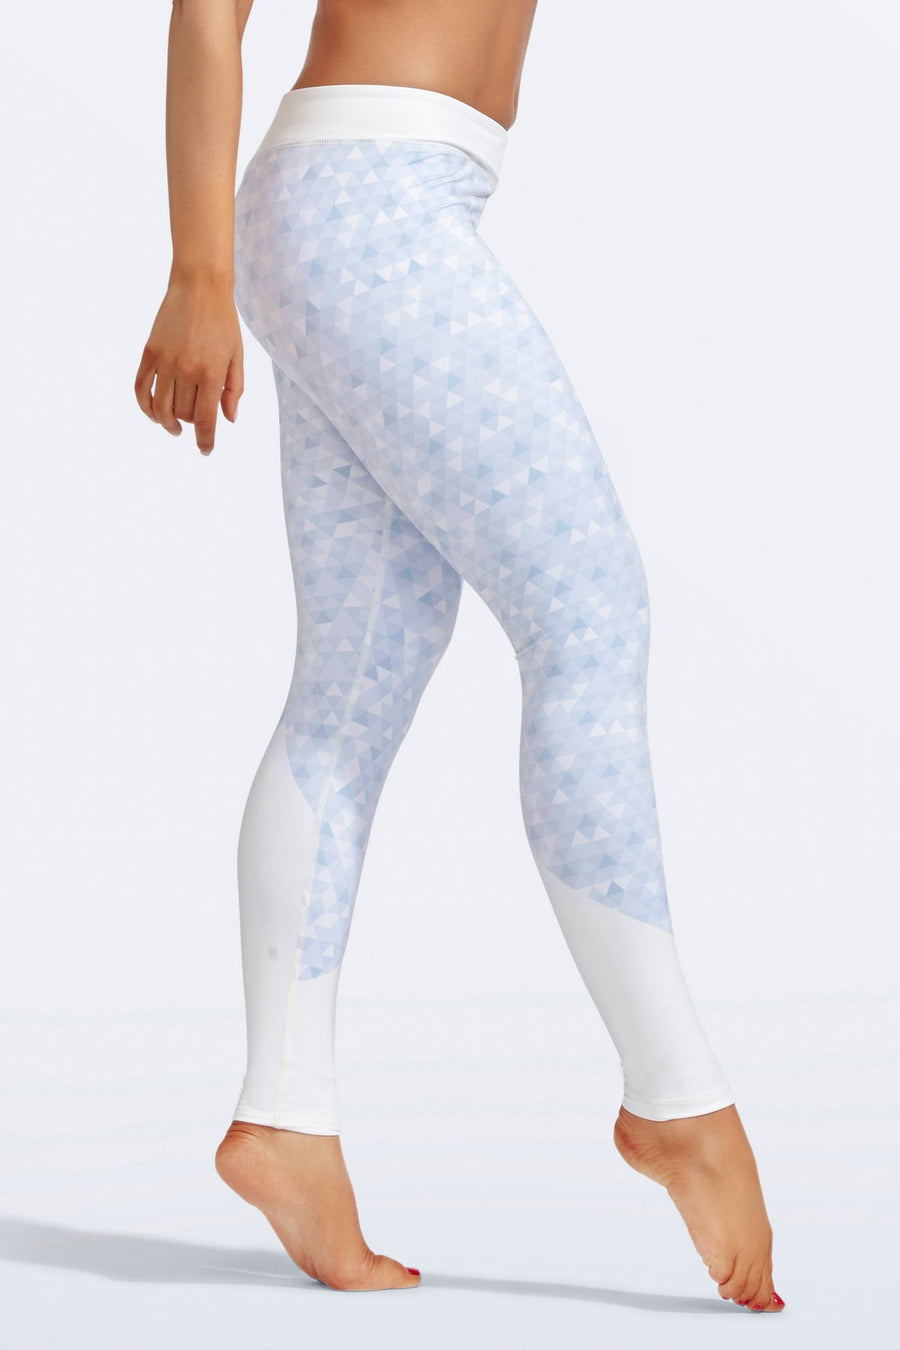 Lucca Leggings - Mint Athletic Apparel